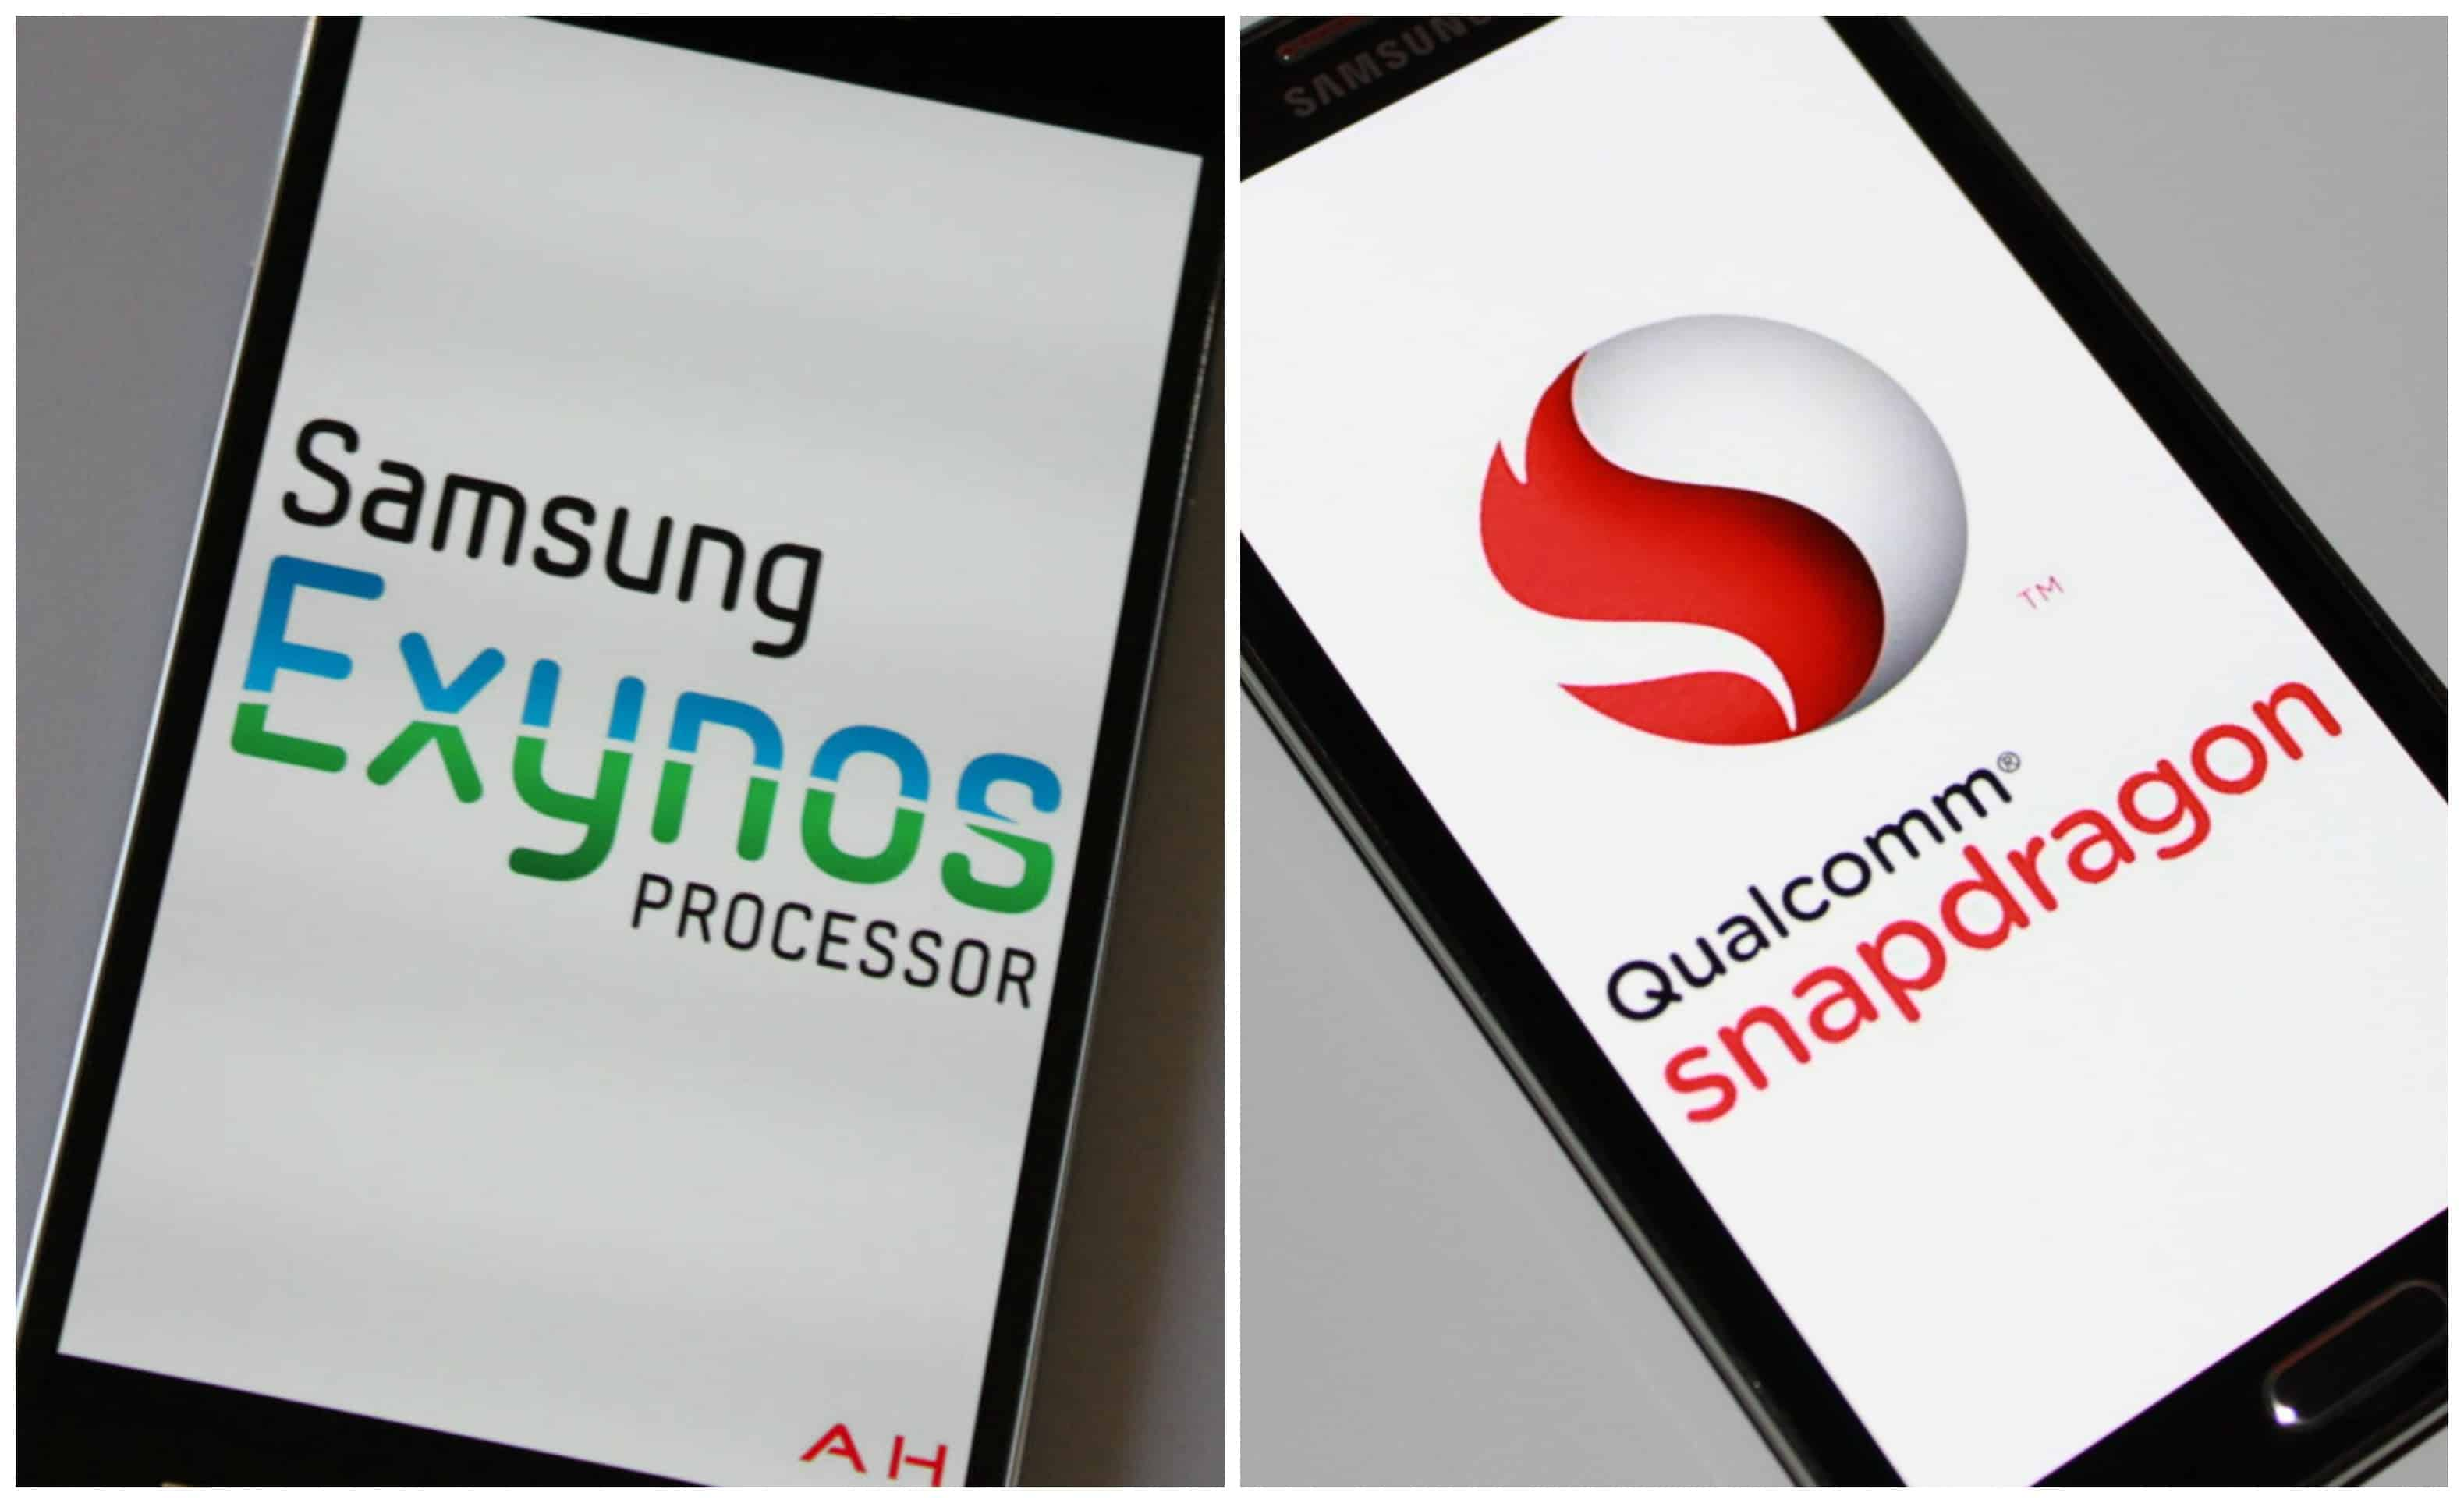 Exynos and Snapdragon AH